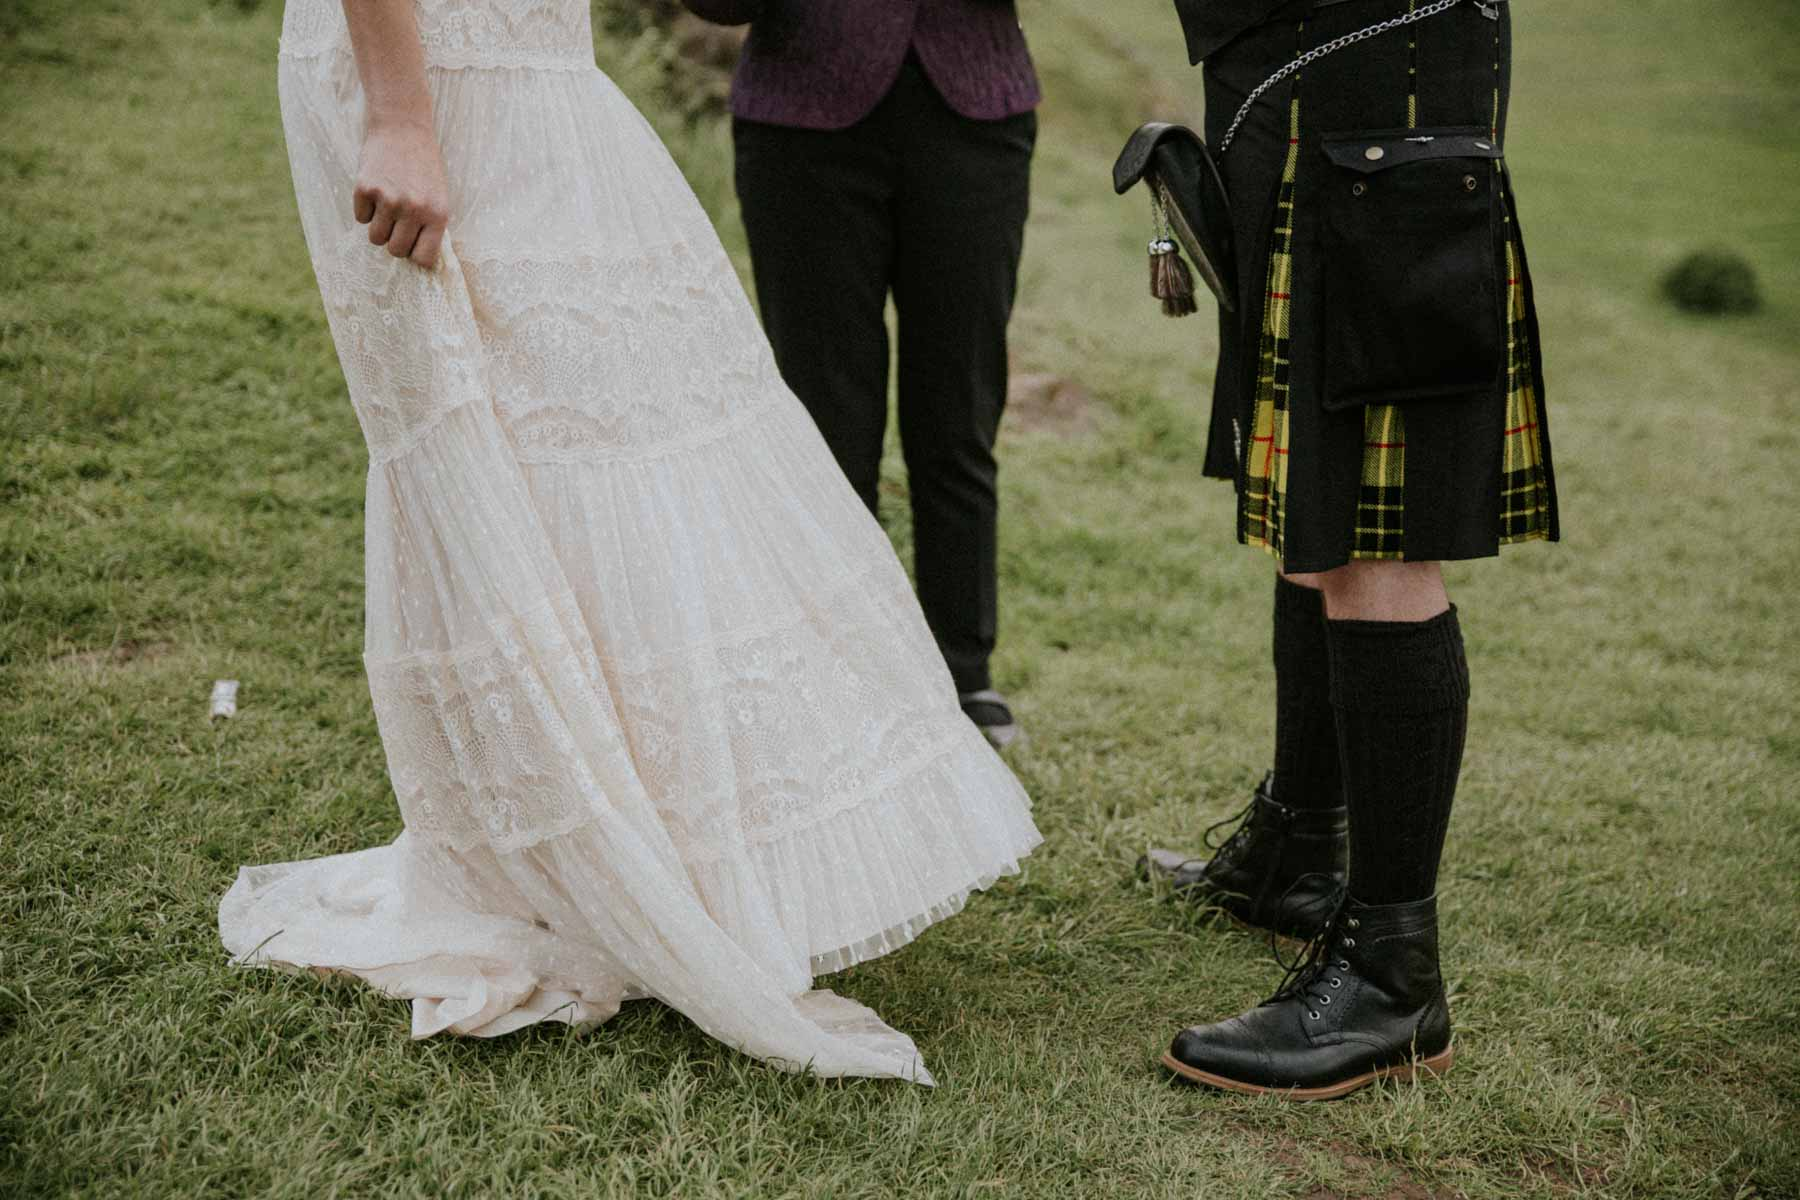 Edinburgh Elopement Photography | Scottish Intimate Wedding | Edinburgh Wedding Photographer